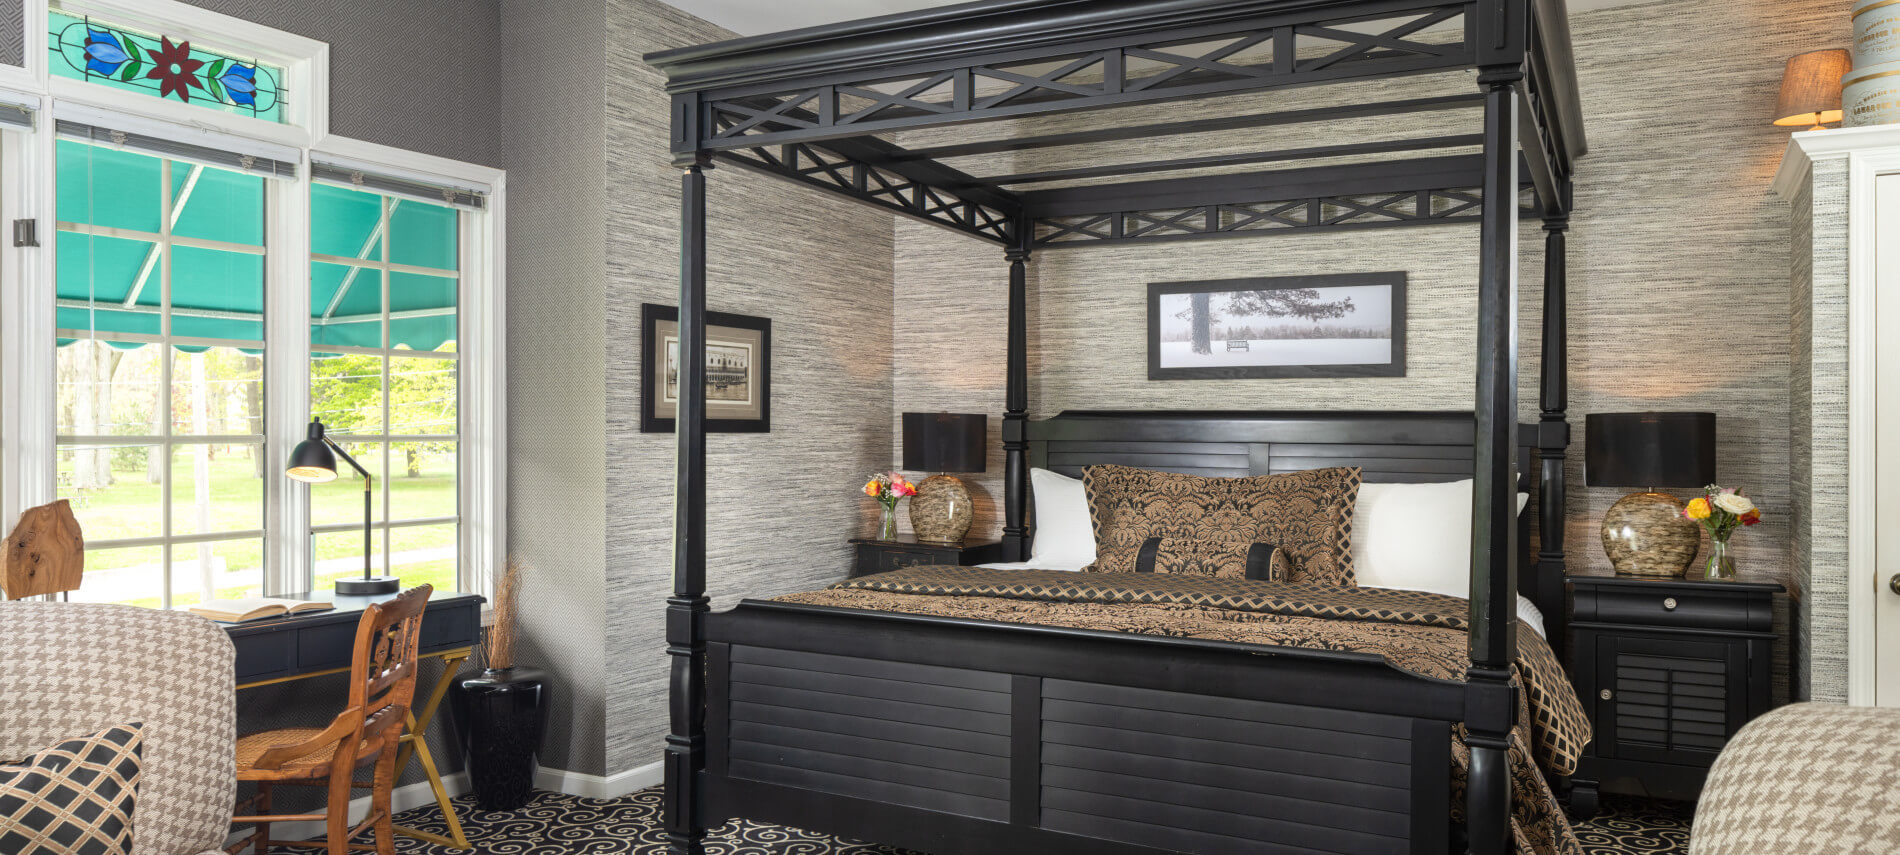 King sized four poster iron bed, tan wallpaper, stands with lamps, checkered chairs, stand with champagne glasses, desk facing window, black carpet.